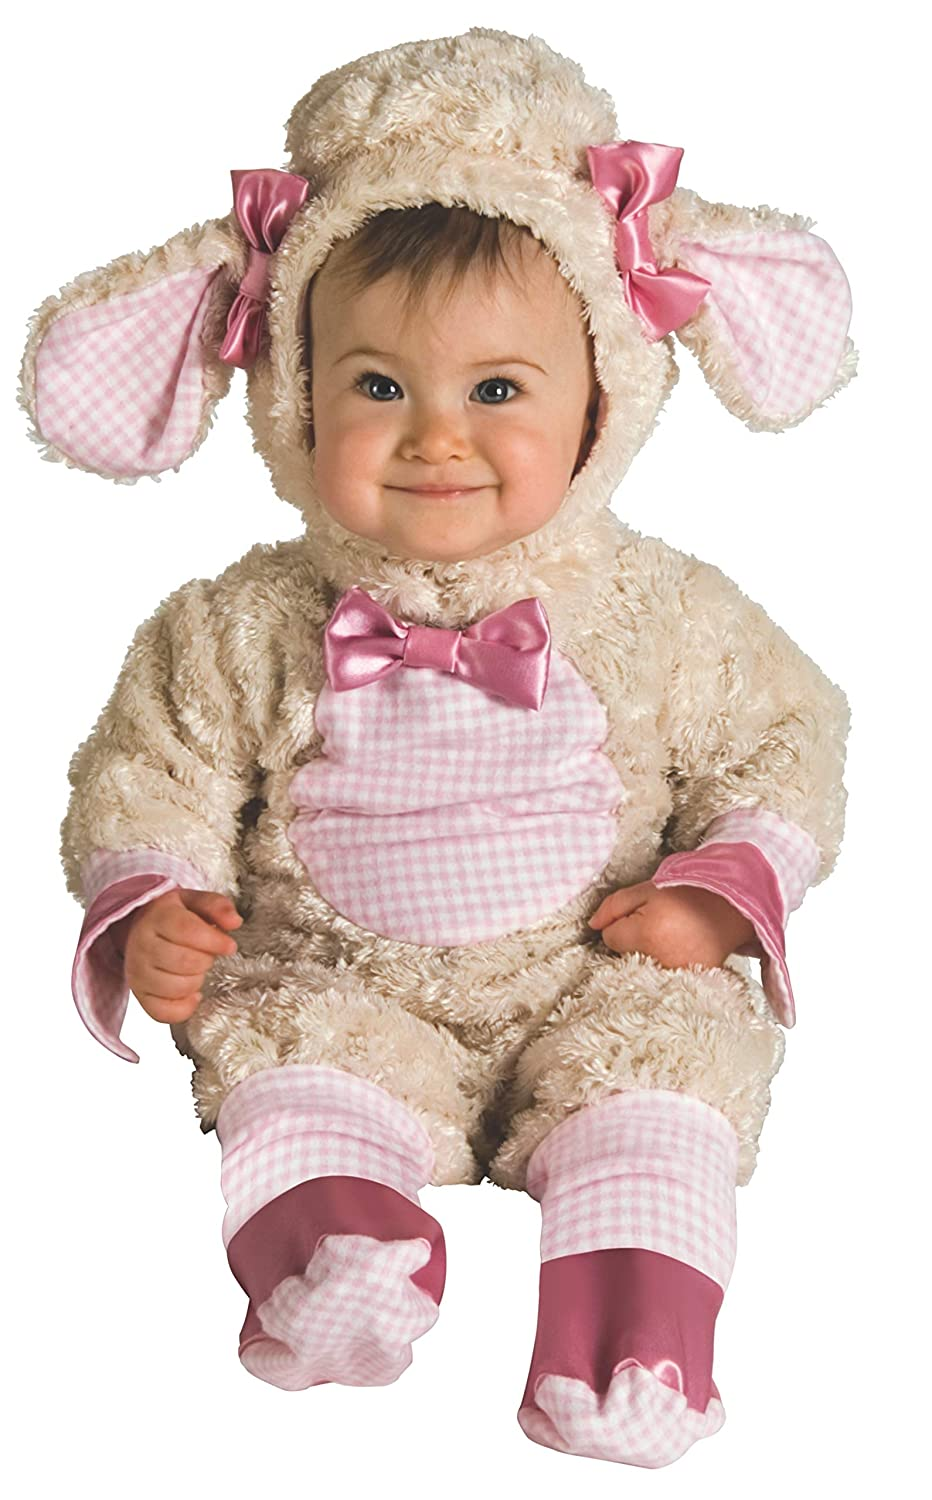 Rubie's Costume Co Baby Lucky Lil' Lamb Costume Rubies Costumes - Apparel